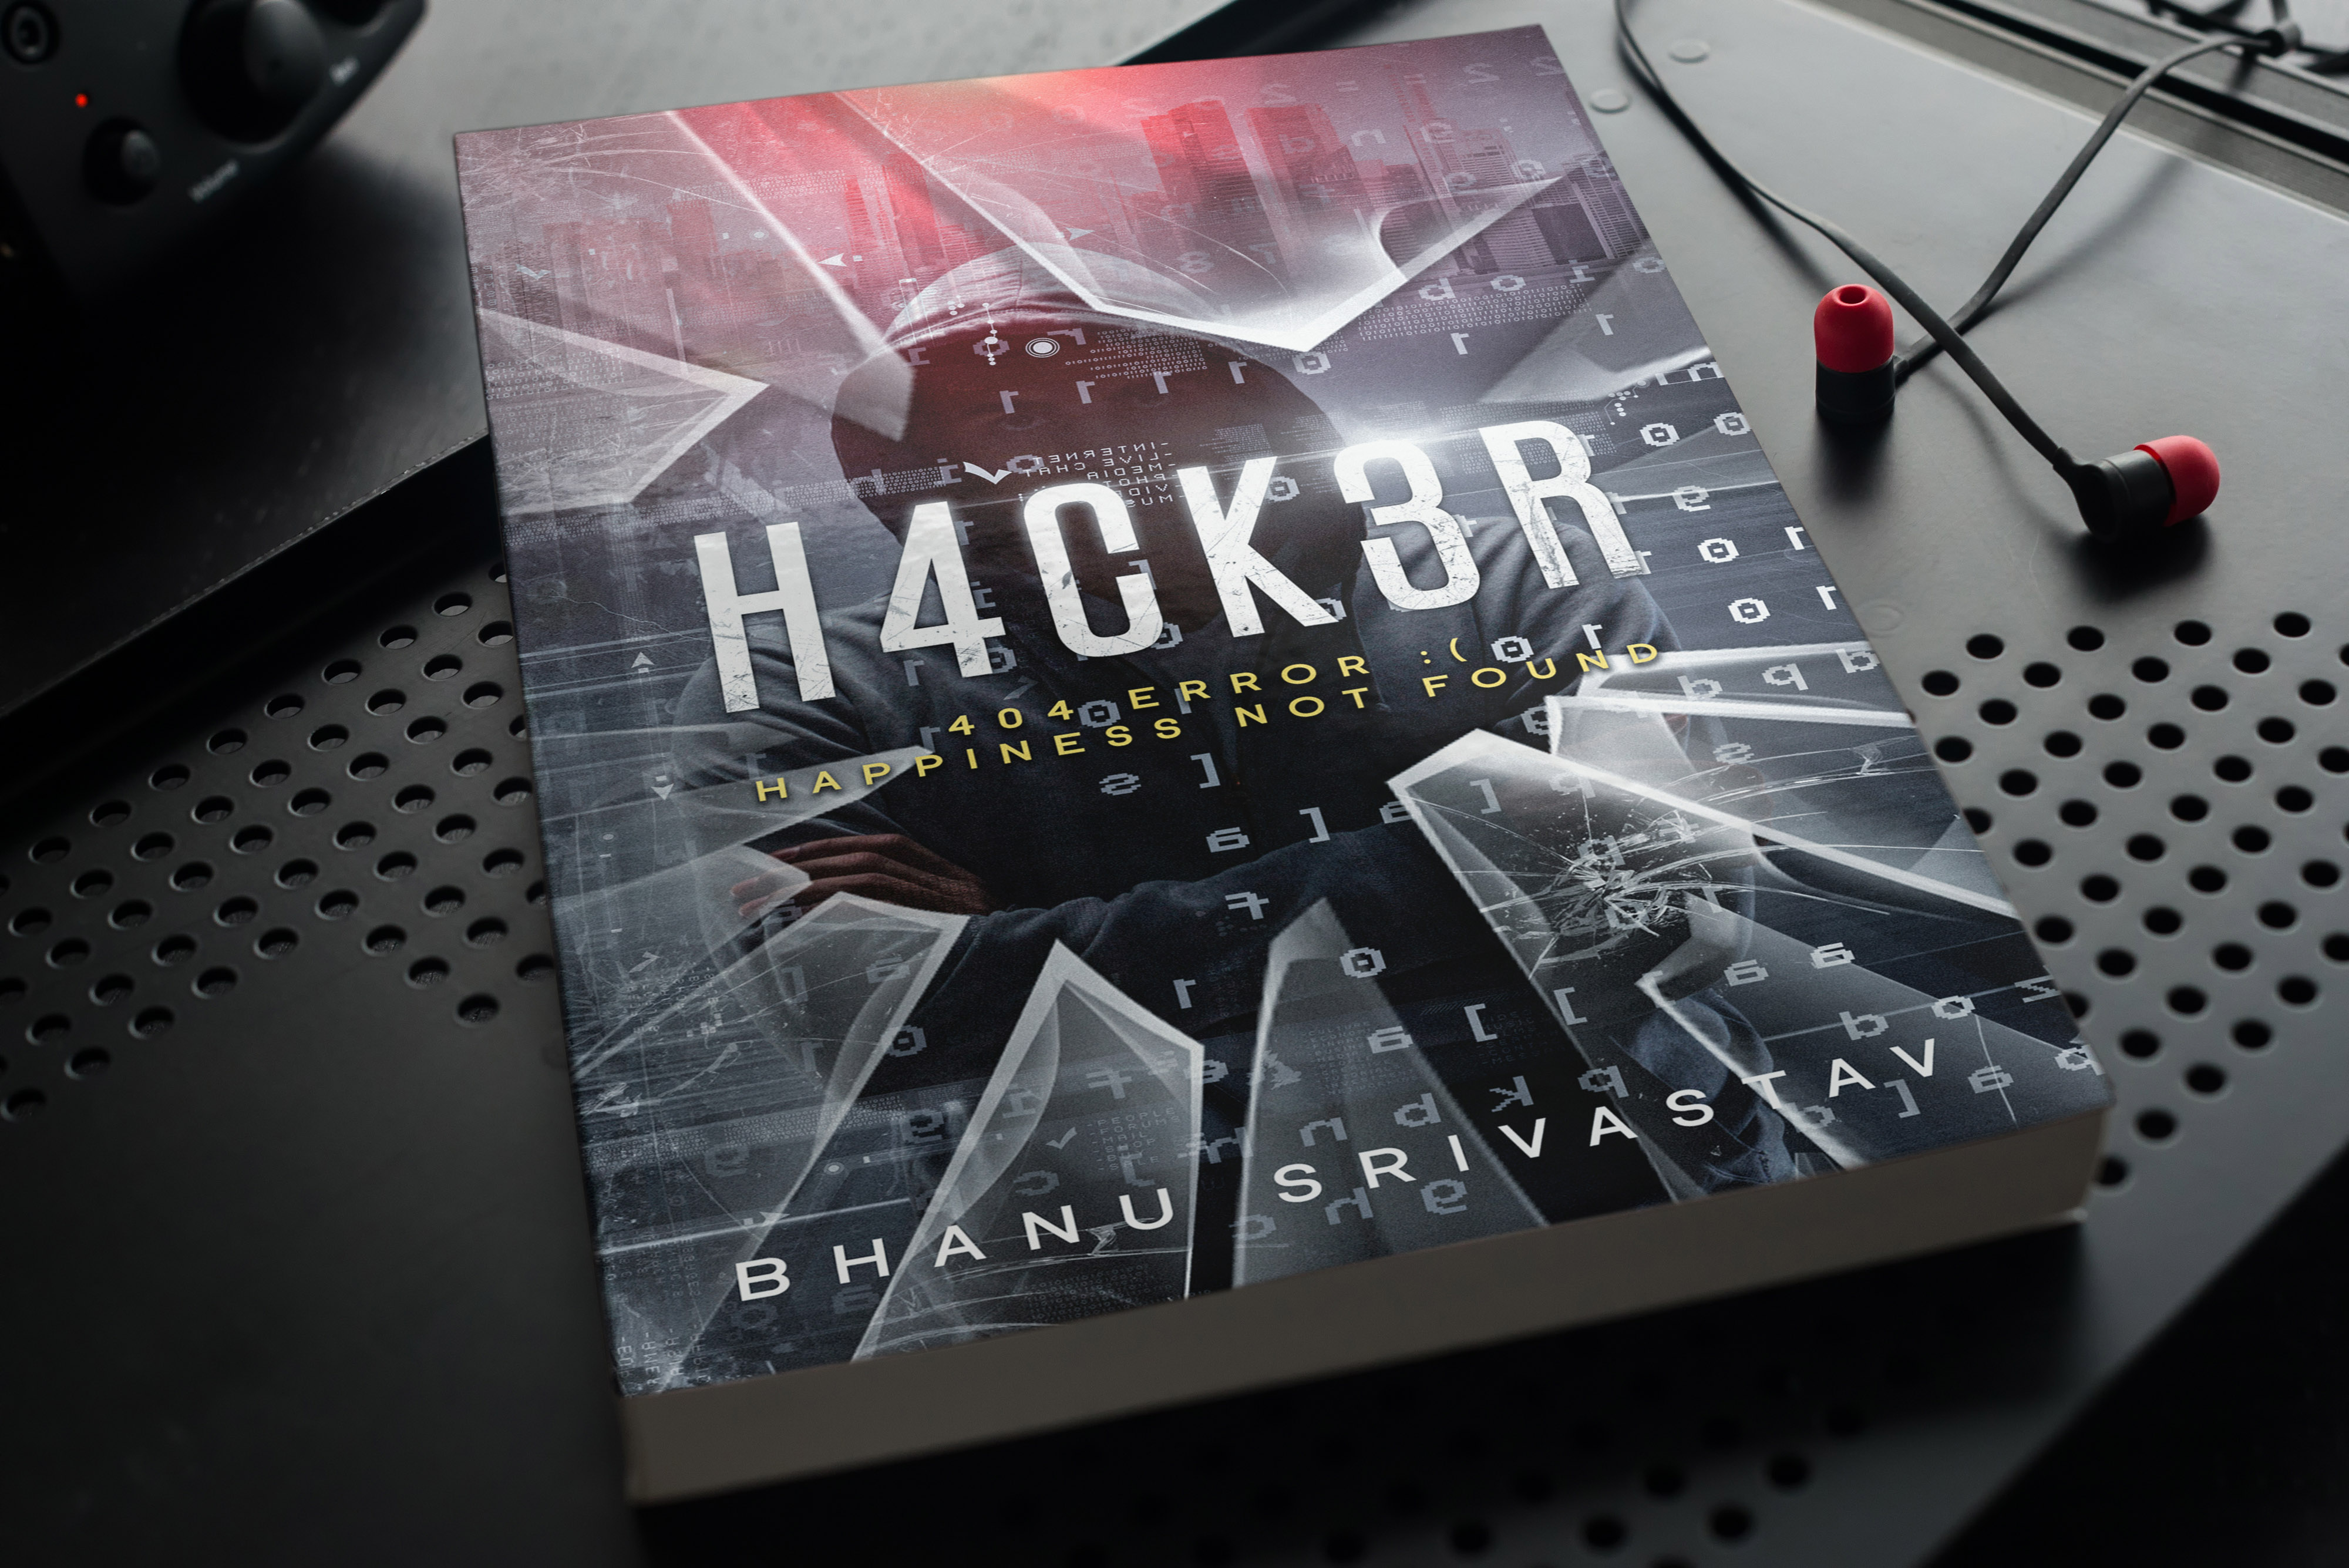 Hacker 404 Happiness not found by Bhanu Srivastav is India's most loved psychological thriller